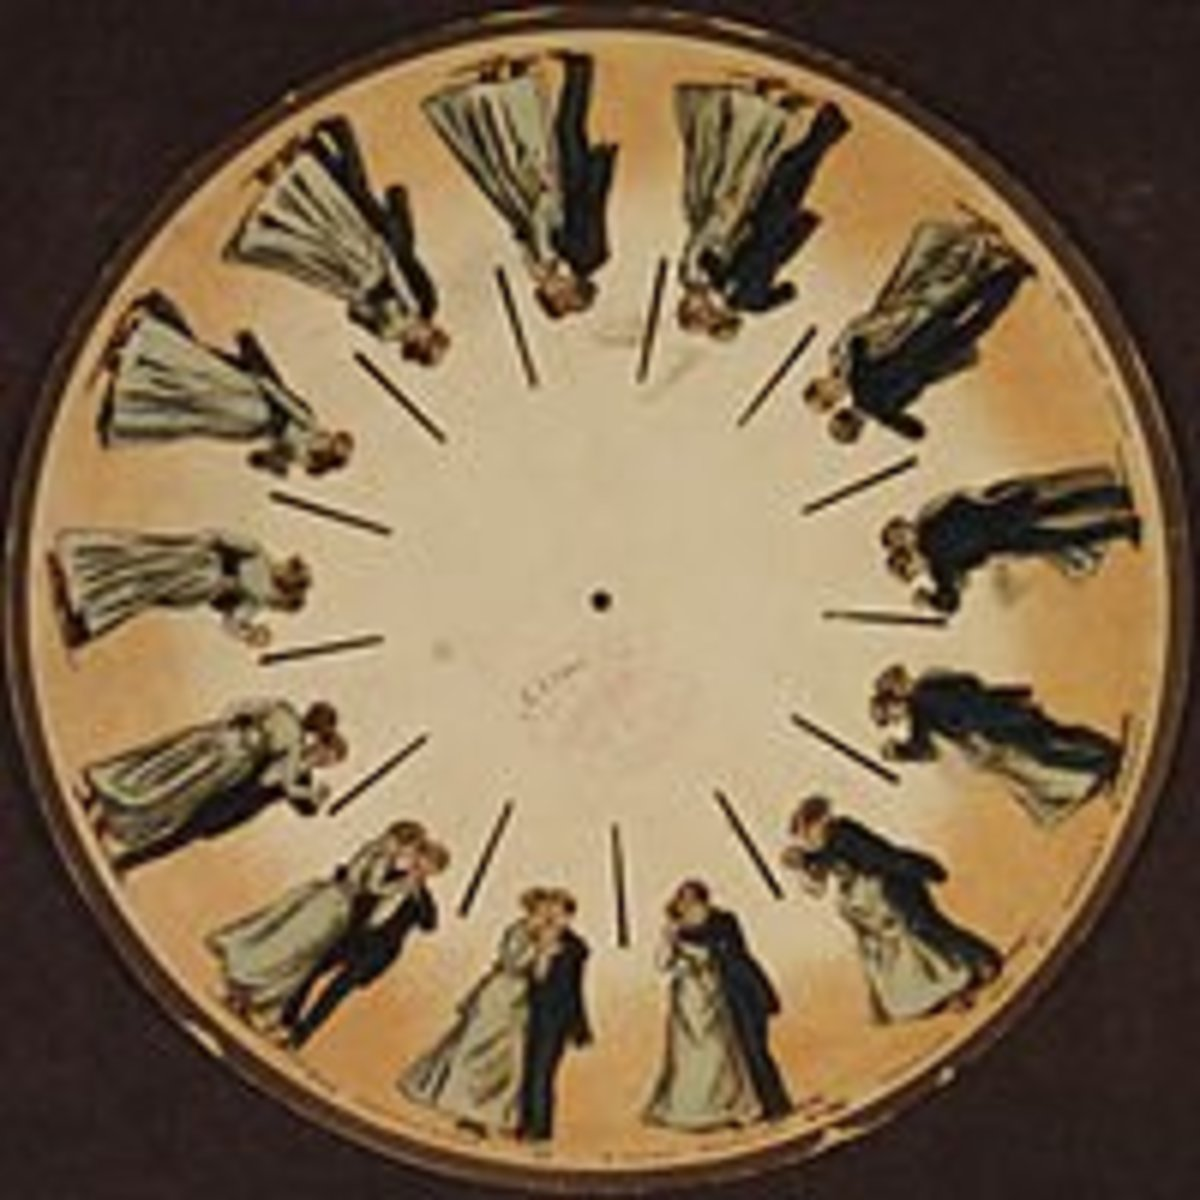 Eadweard Muybridge's Phenakistoscope: A Couple Waltzing; 1893. The spinning disk reflecting in a mirror shows the images moving.